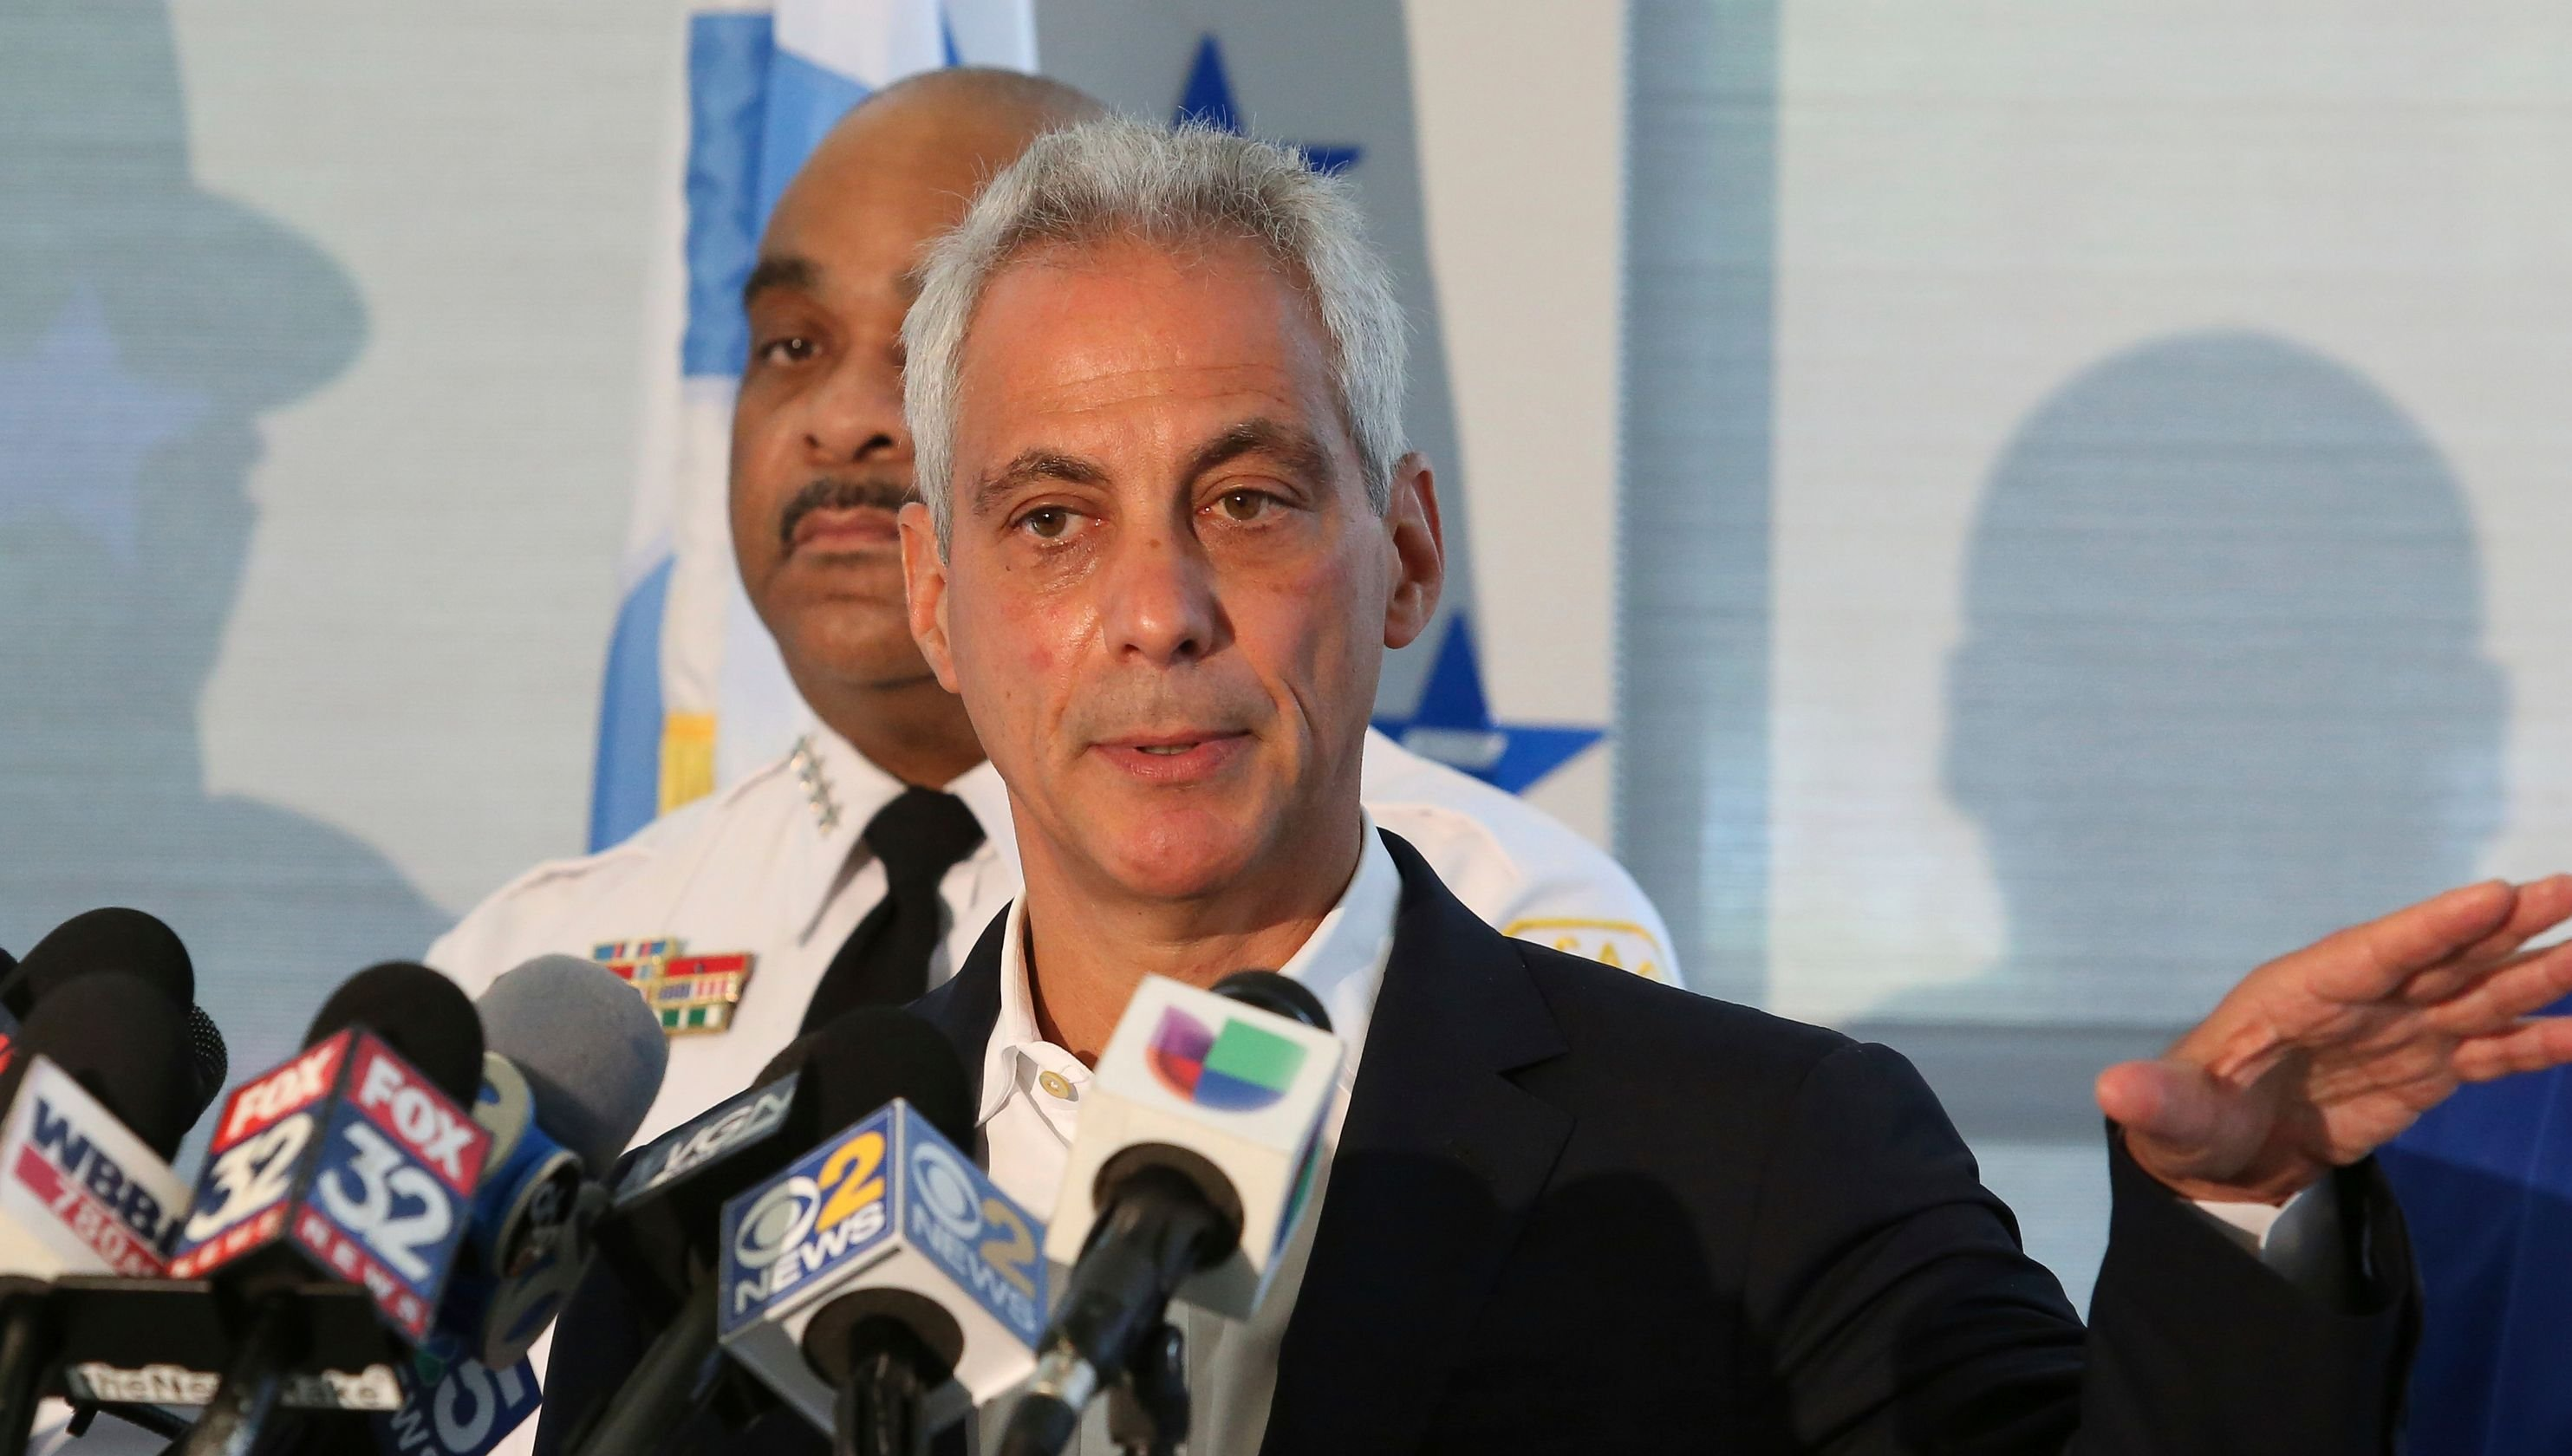 Chicago mayor: Legalize marijuana, open casino to help with pension crisis